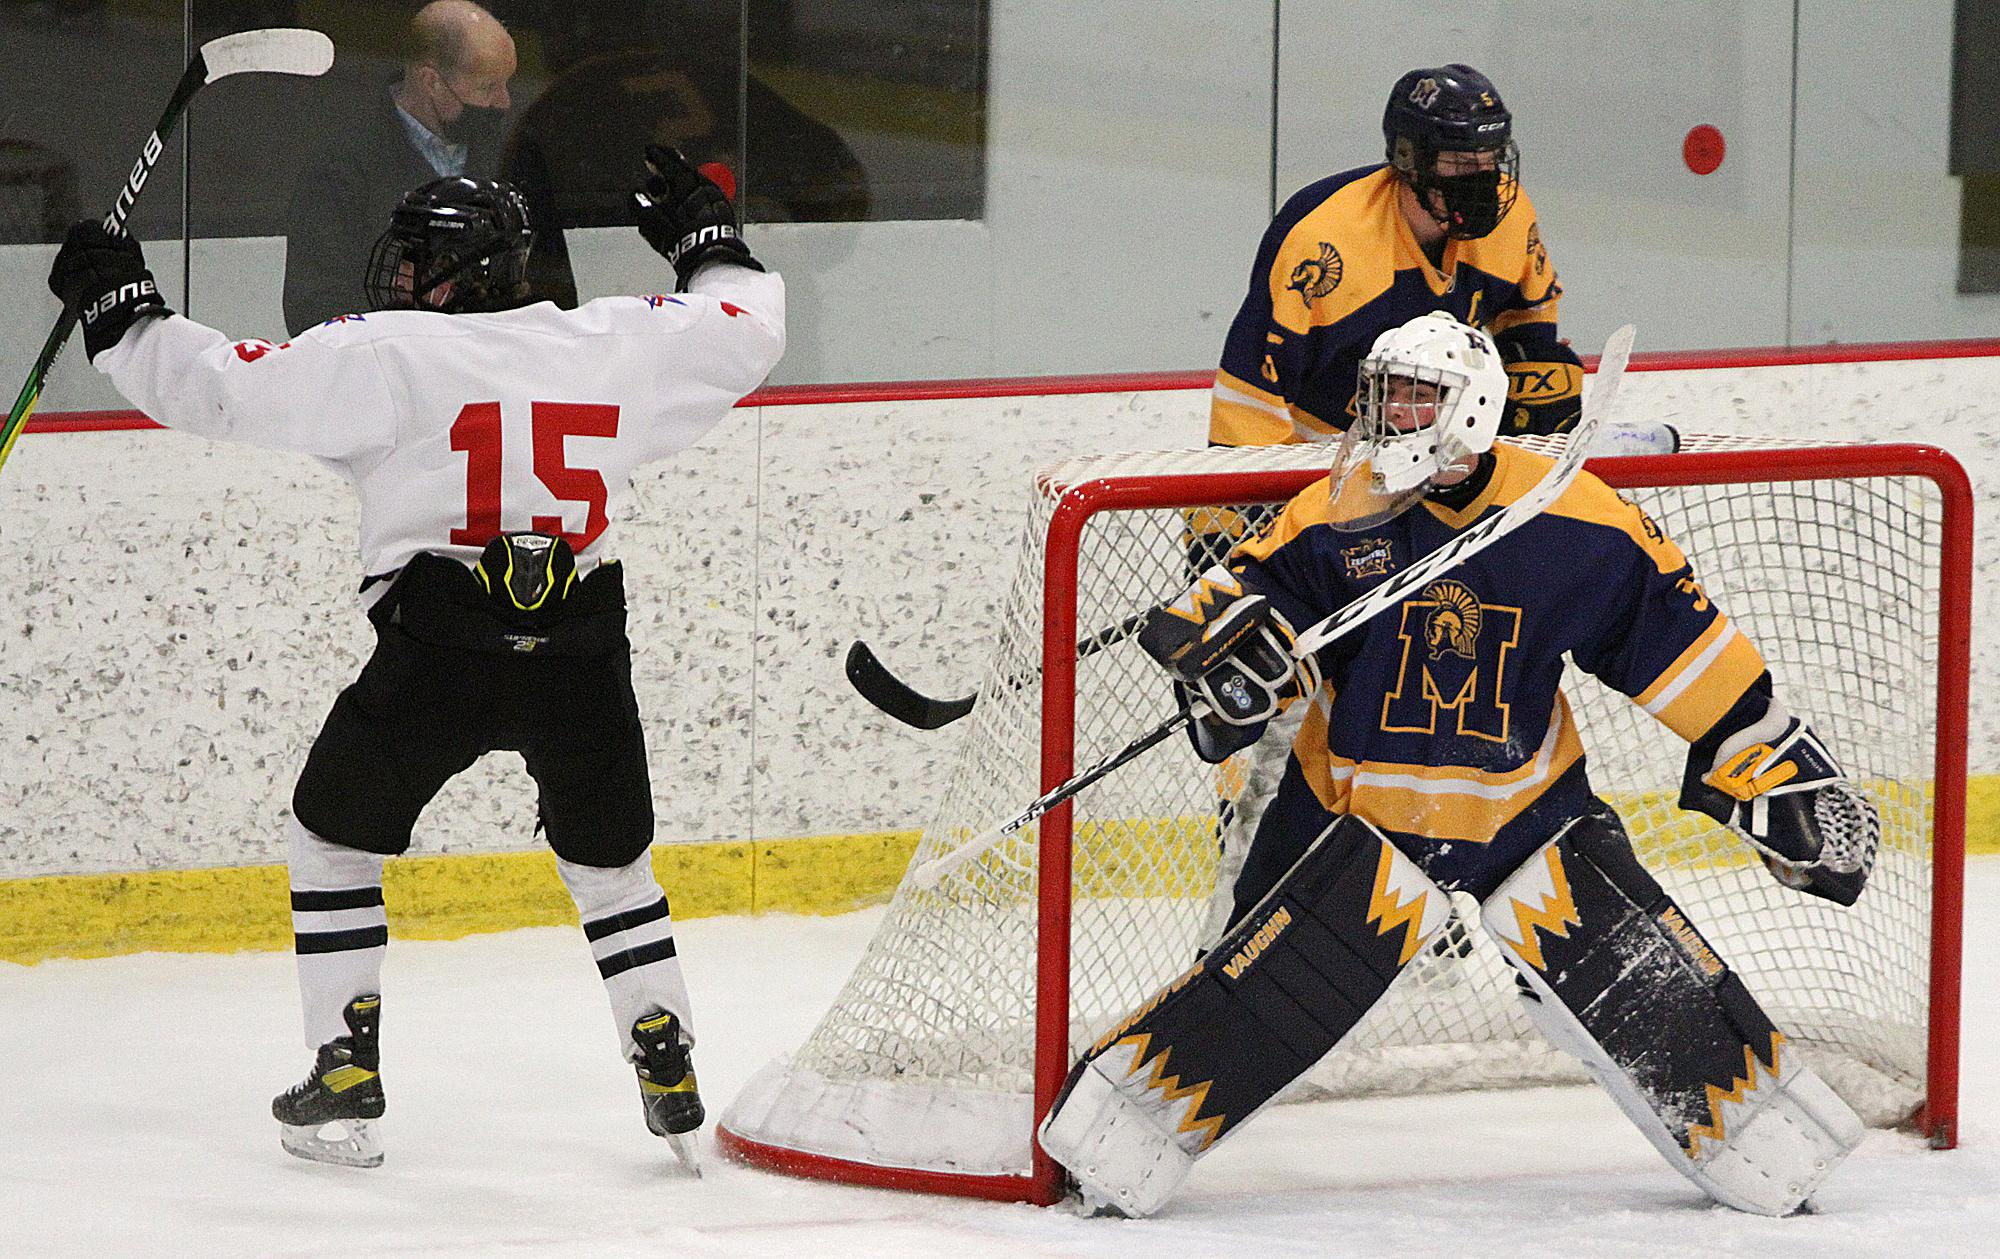 Gentry Academy junior wing Barrett Hall slips a wrist shot past Mahtomedi goaltender Ben Dardis for a third-period goal Thursday night as the host Stars triumphed with a 7-3 victory. Photo by Drew Herron, SportsEngine